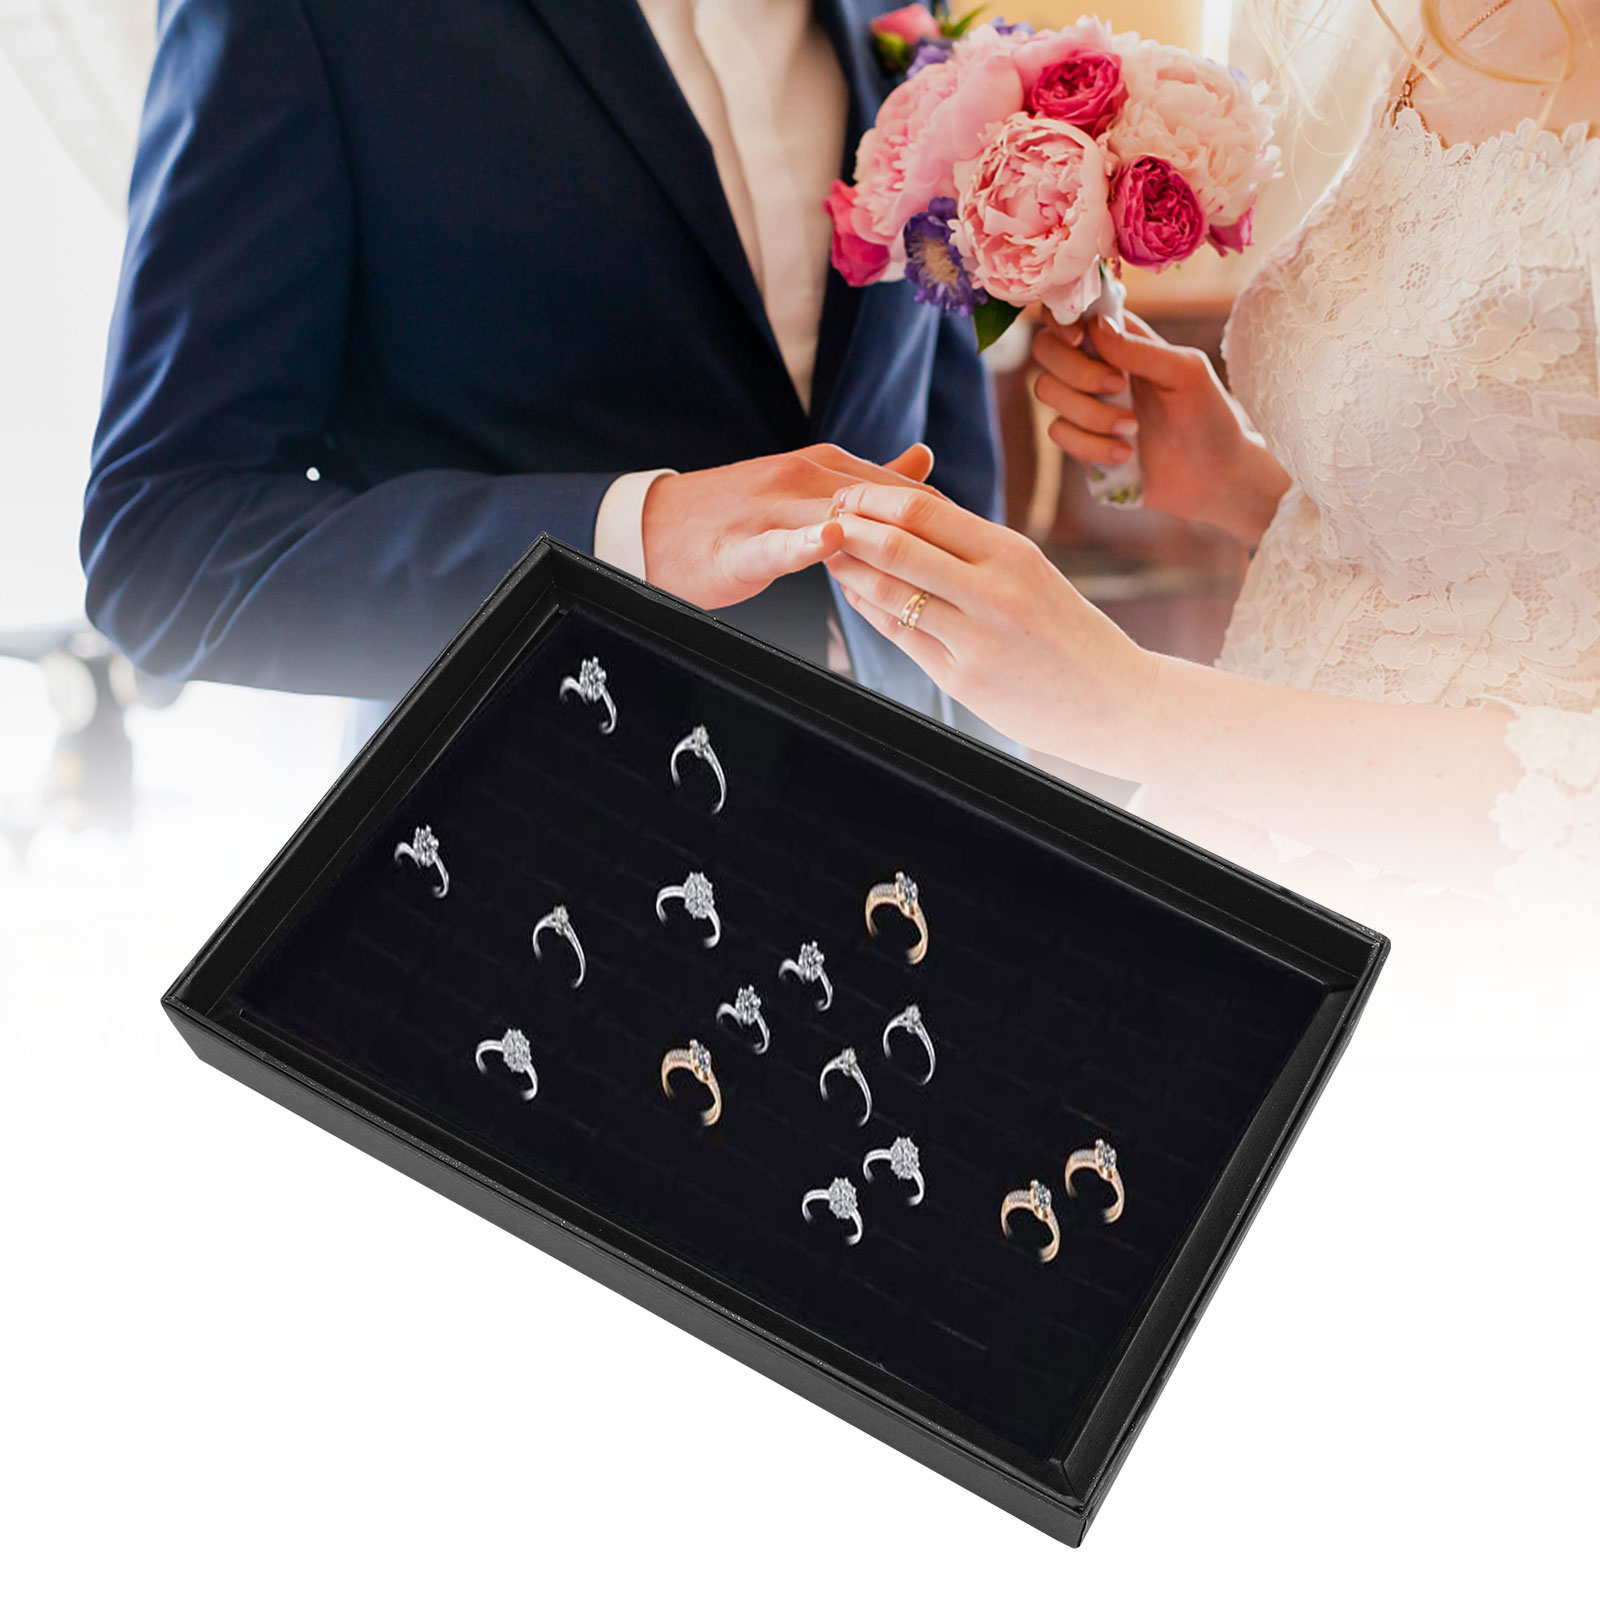 Fashion-Jewelry-Organizer-Box-Holder-Tray-Case-For-Ring-Earring-Storage-Display thumbnail 5